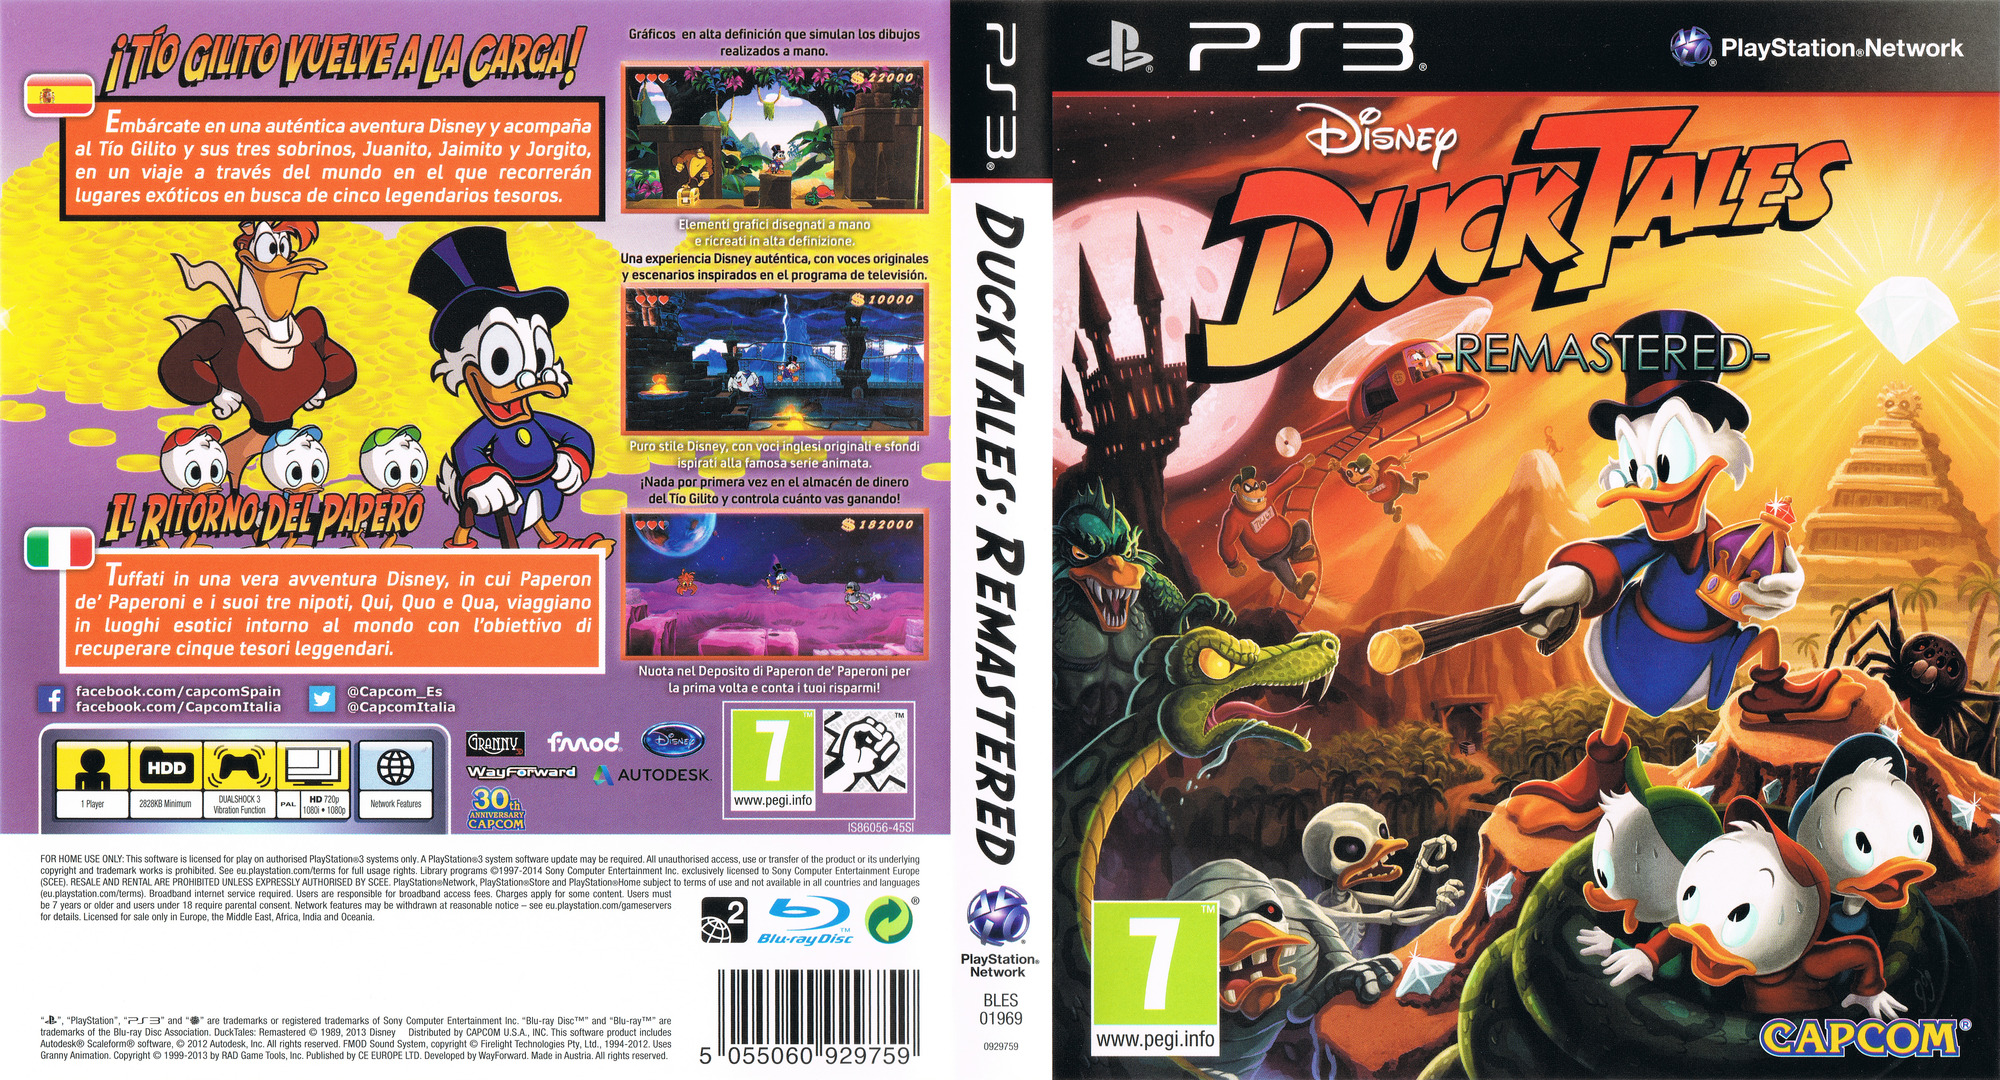 BLES01969 DuckTales Remastered